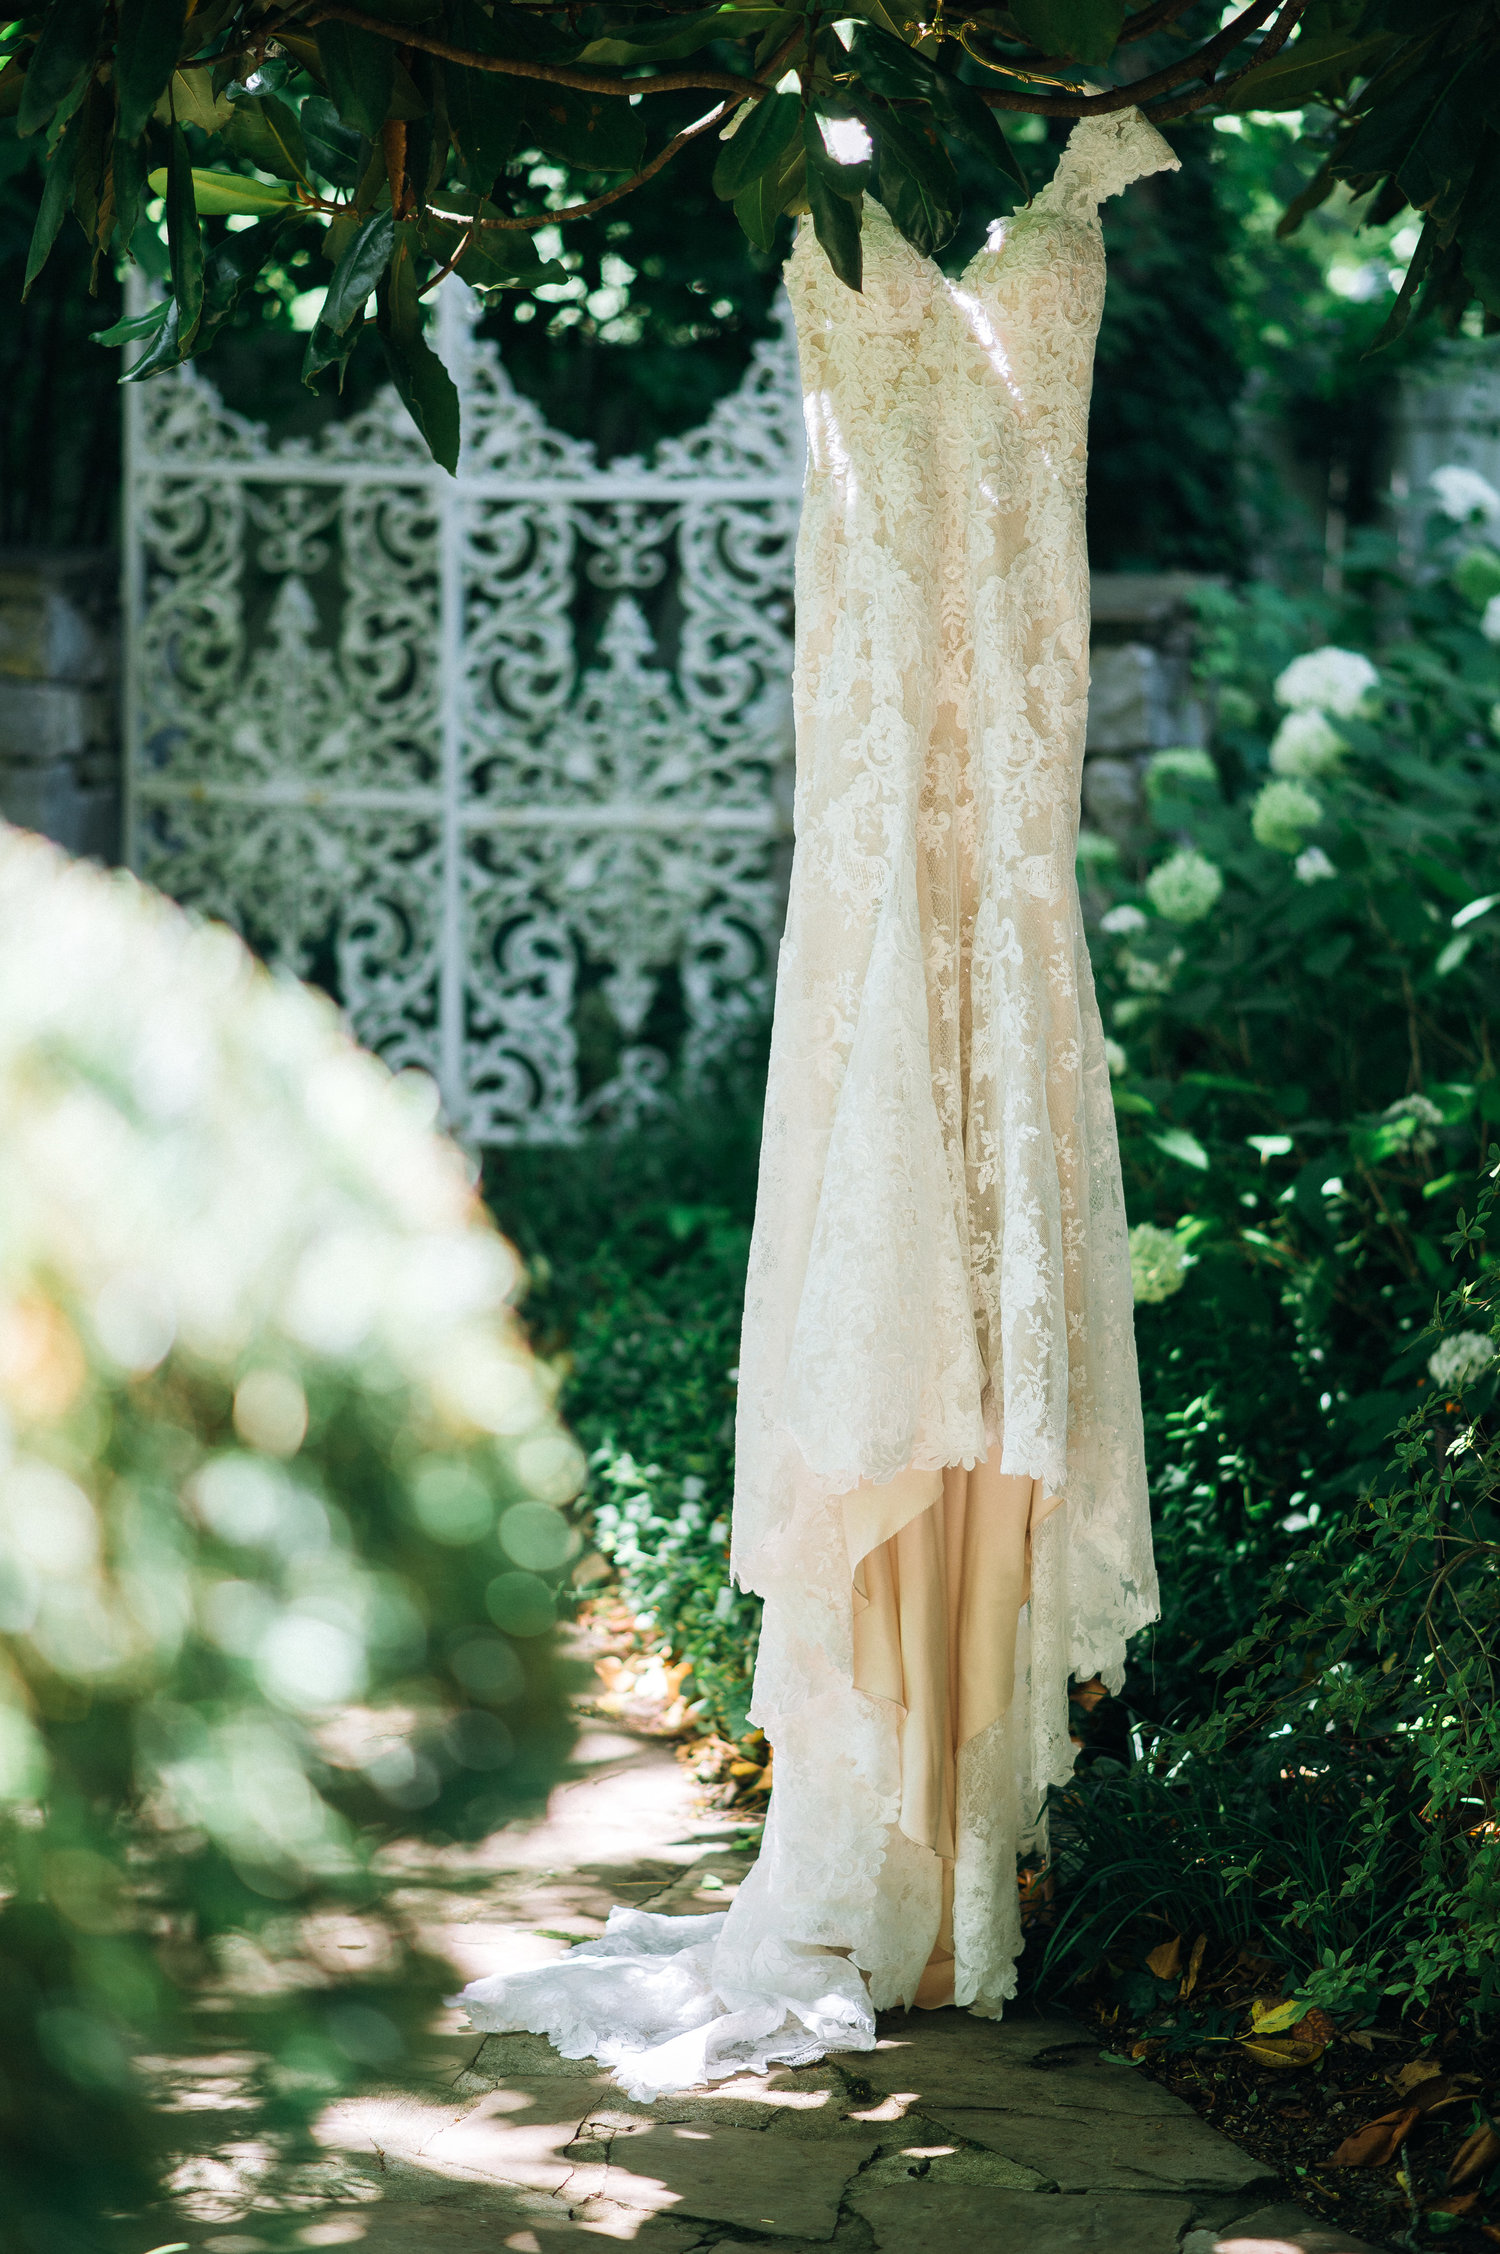 Lace trumpet wedding gown at garden wedding venue in Nashville